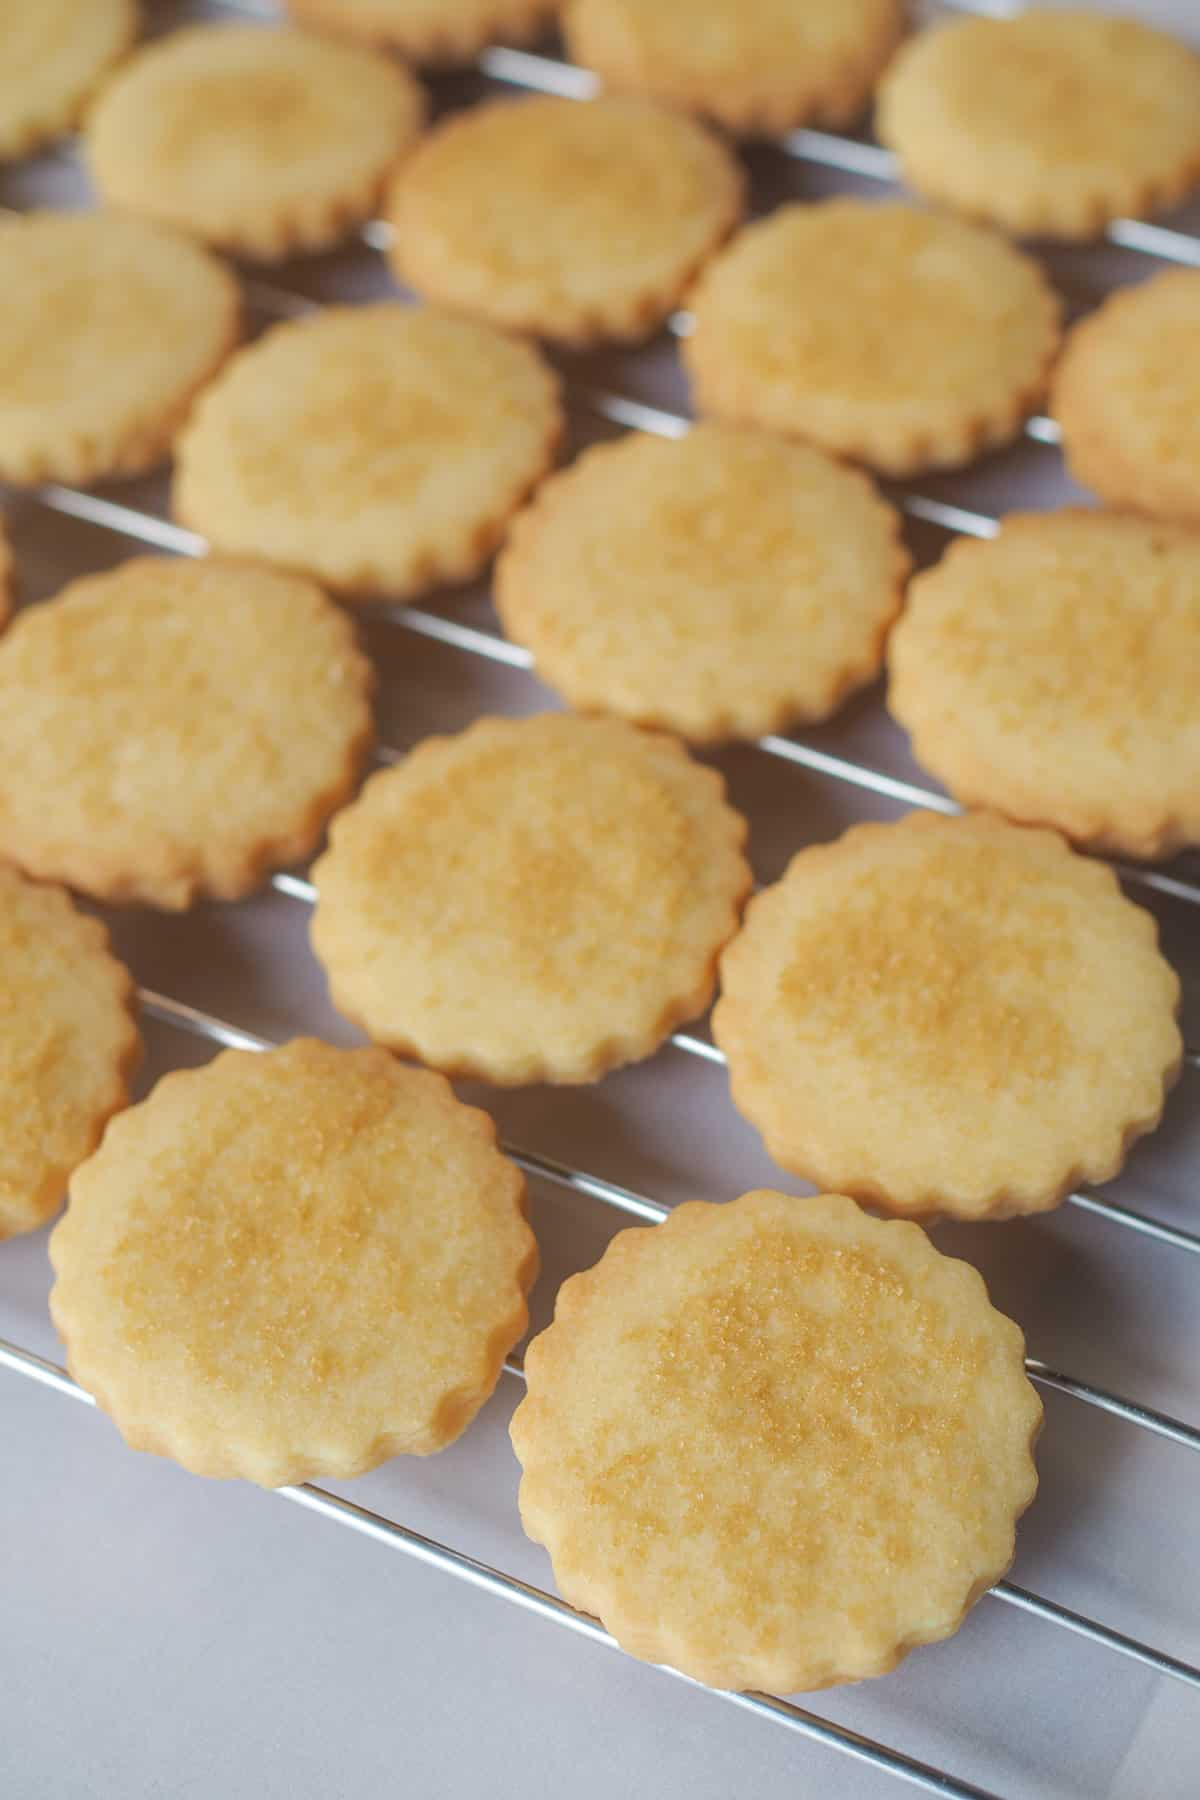 Scalloped cut out eggless sugar cookiescookies on a wire rack